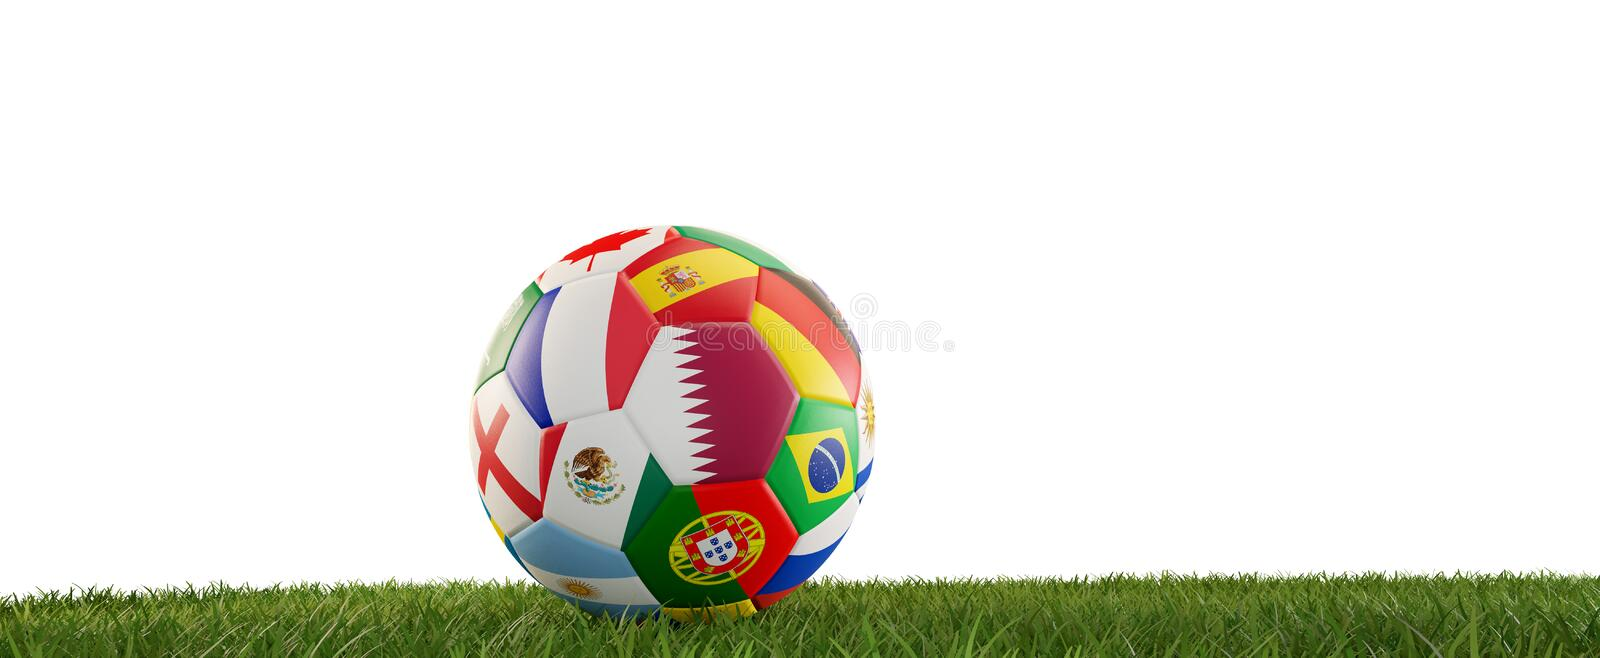 Soccer ball flags design with Qatar and other 3d-illustration royalty free illustration